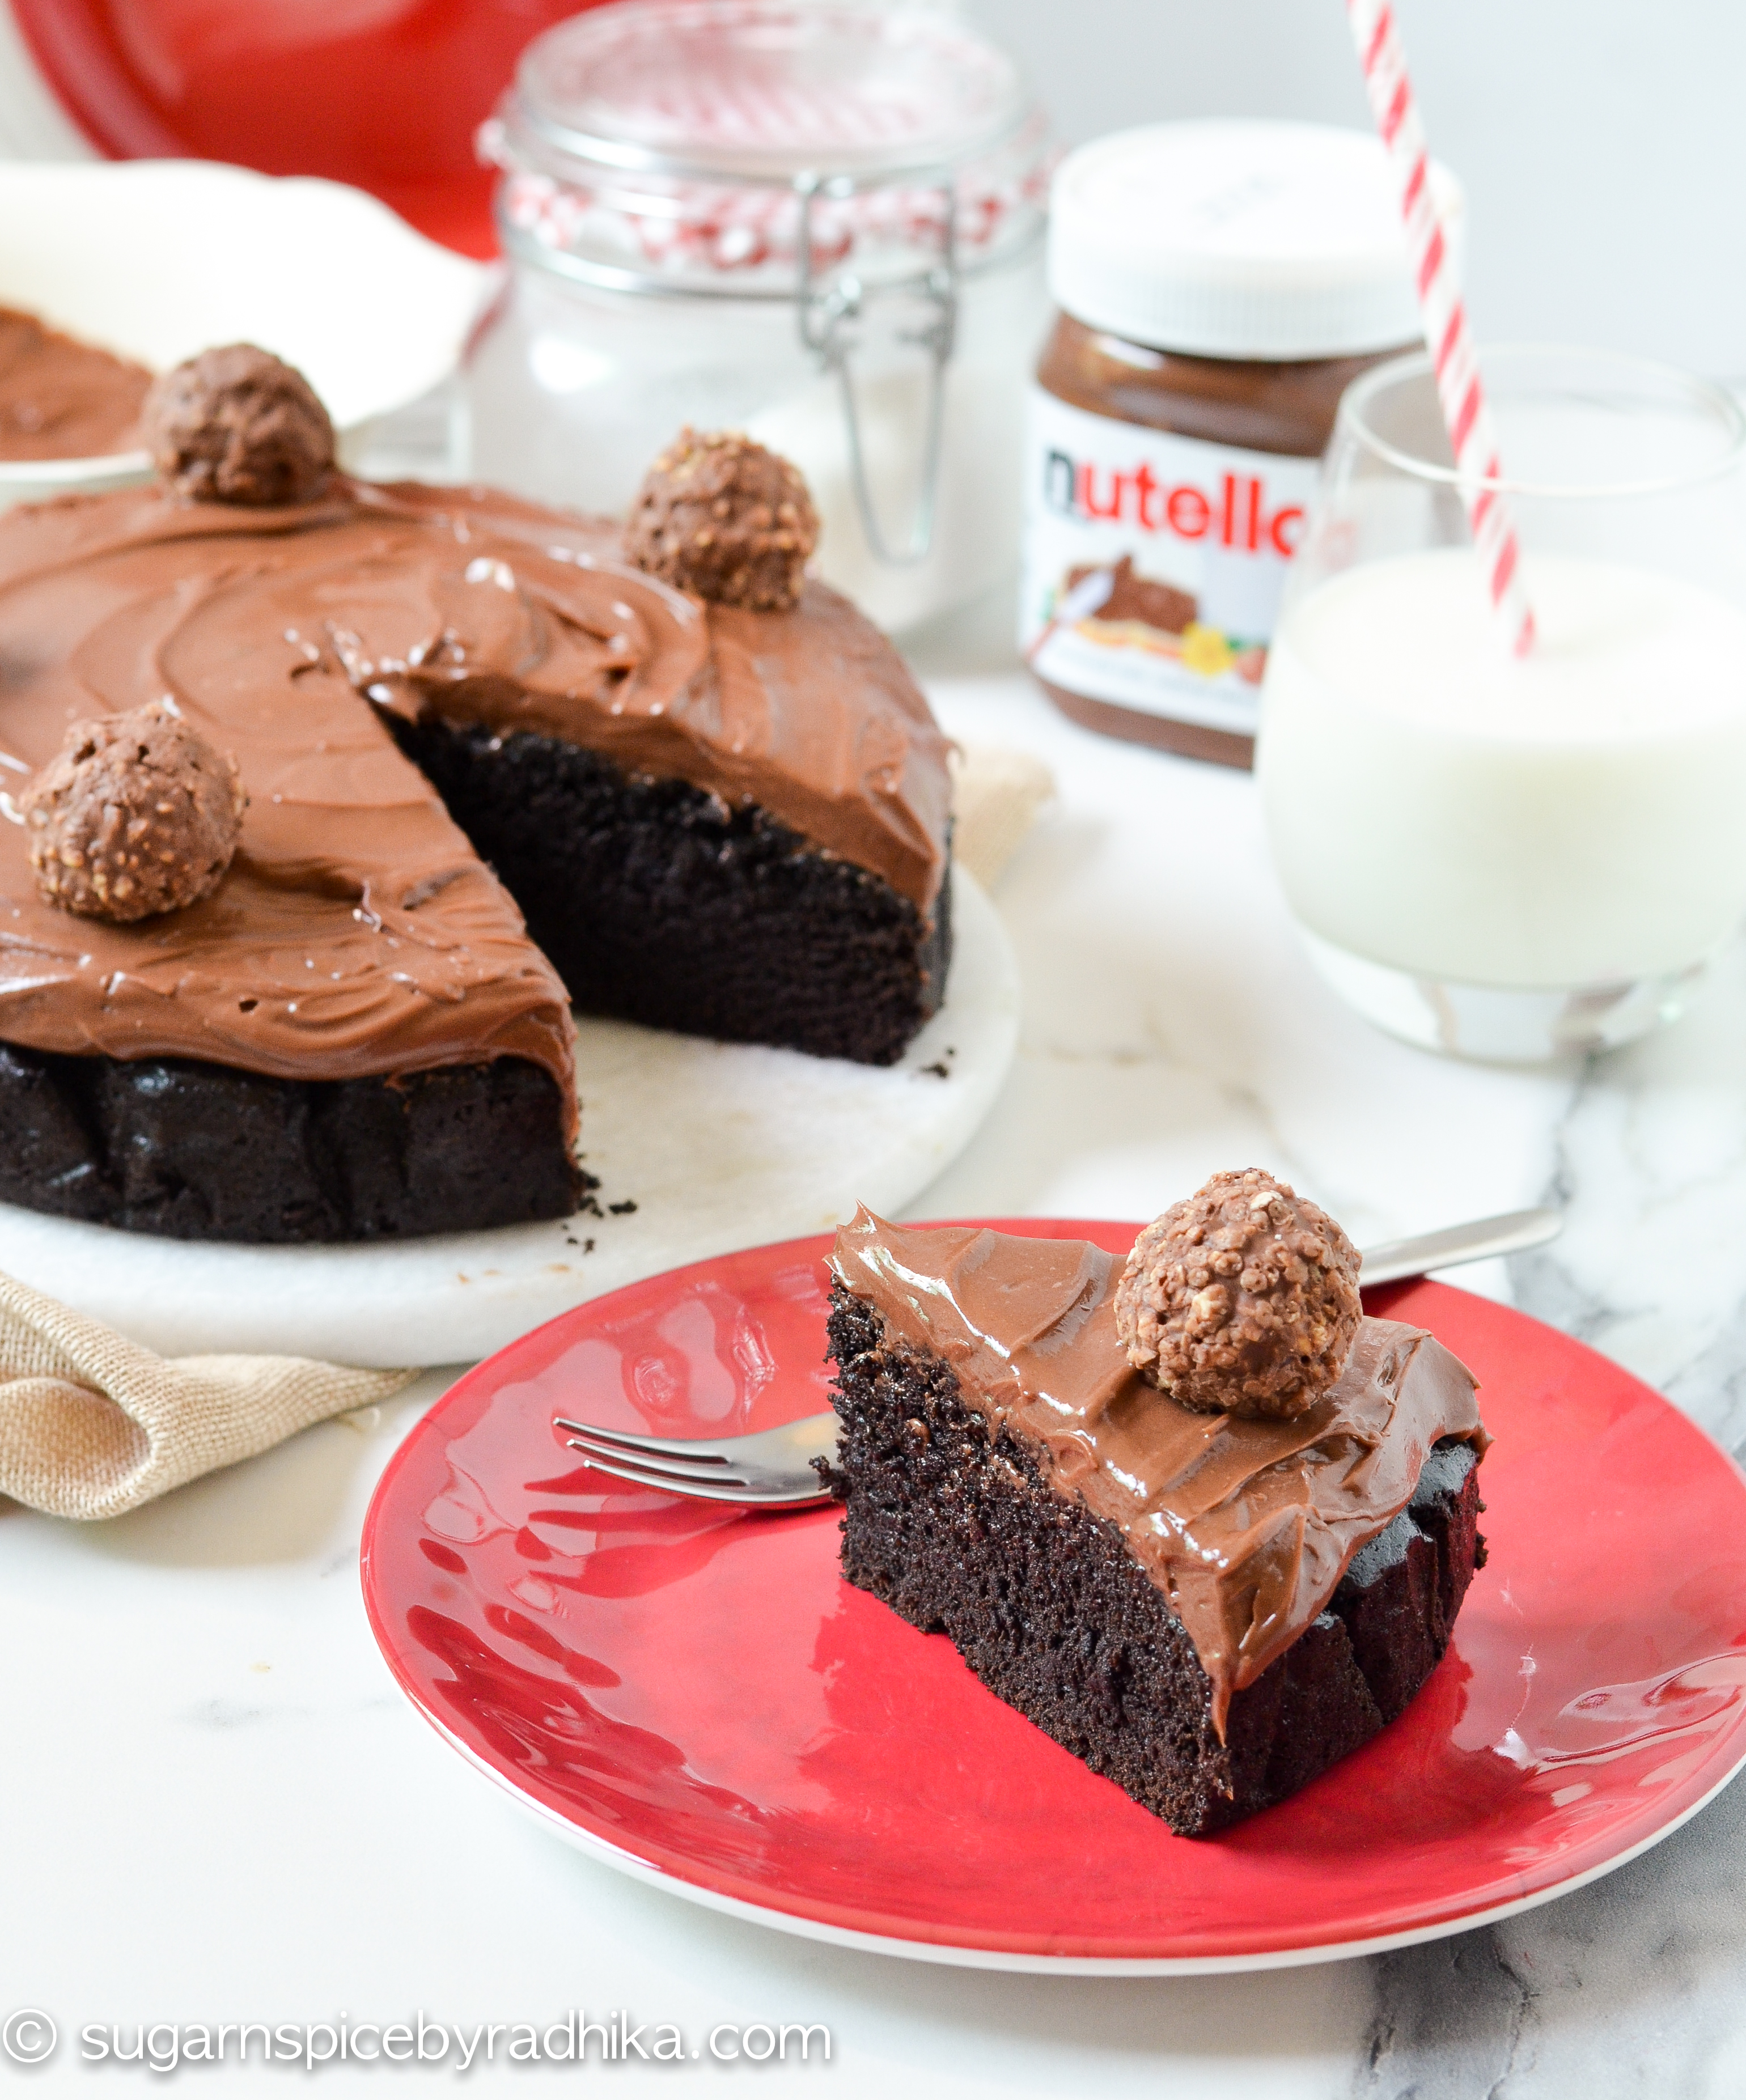 Eggless Chocolate Cake with Nutella Frosting